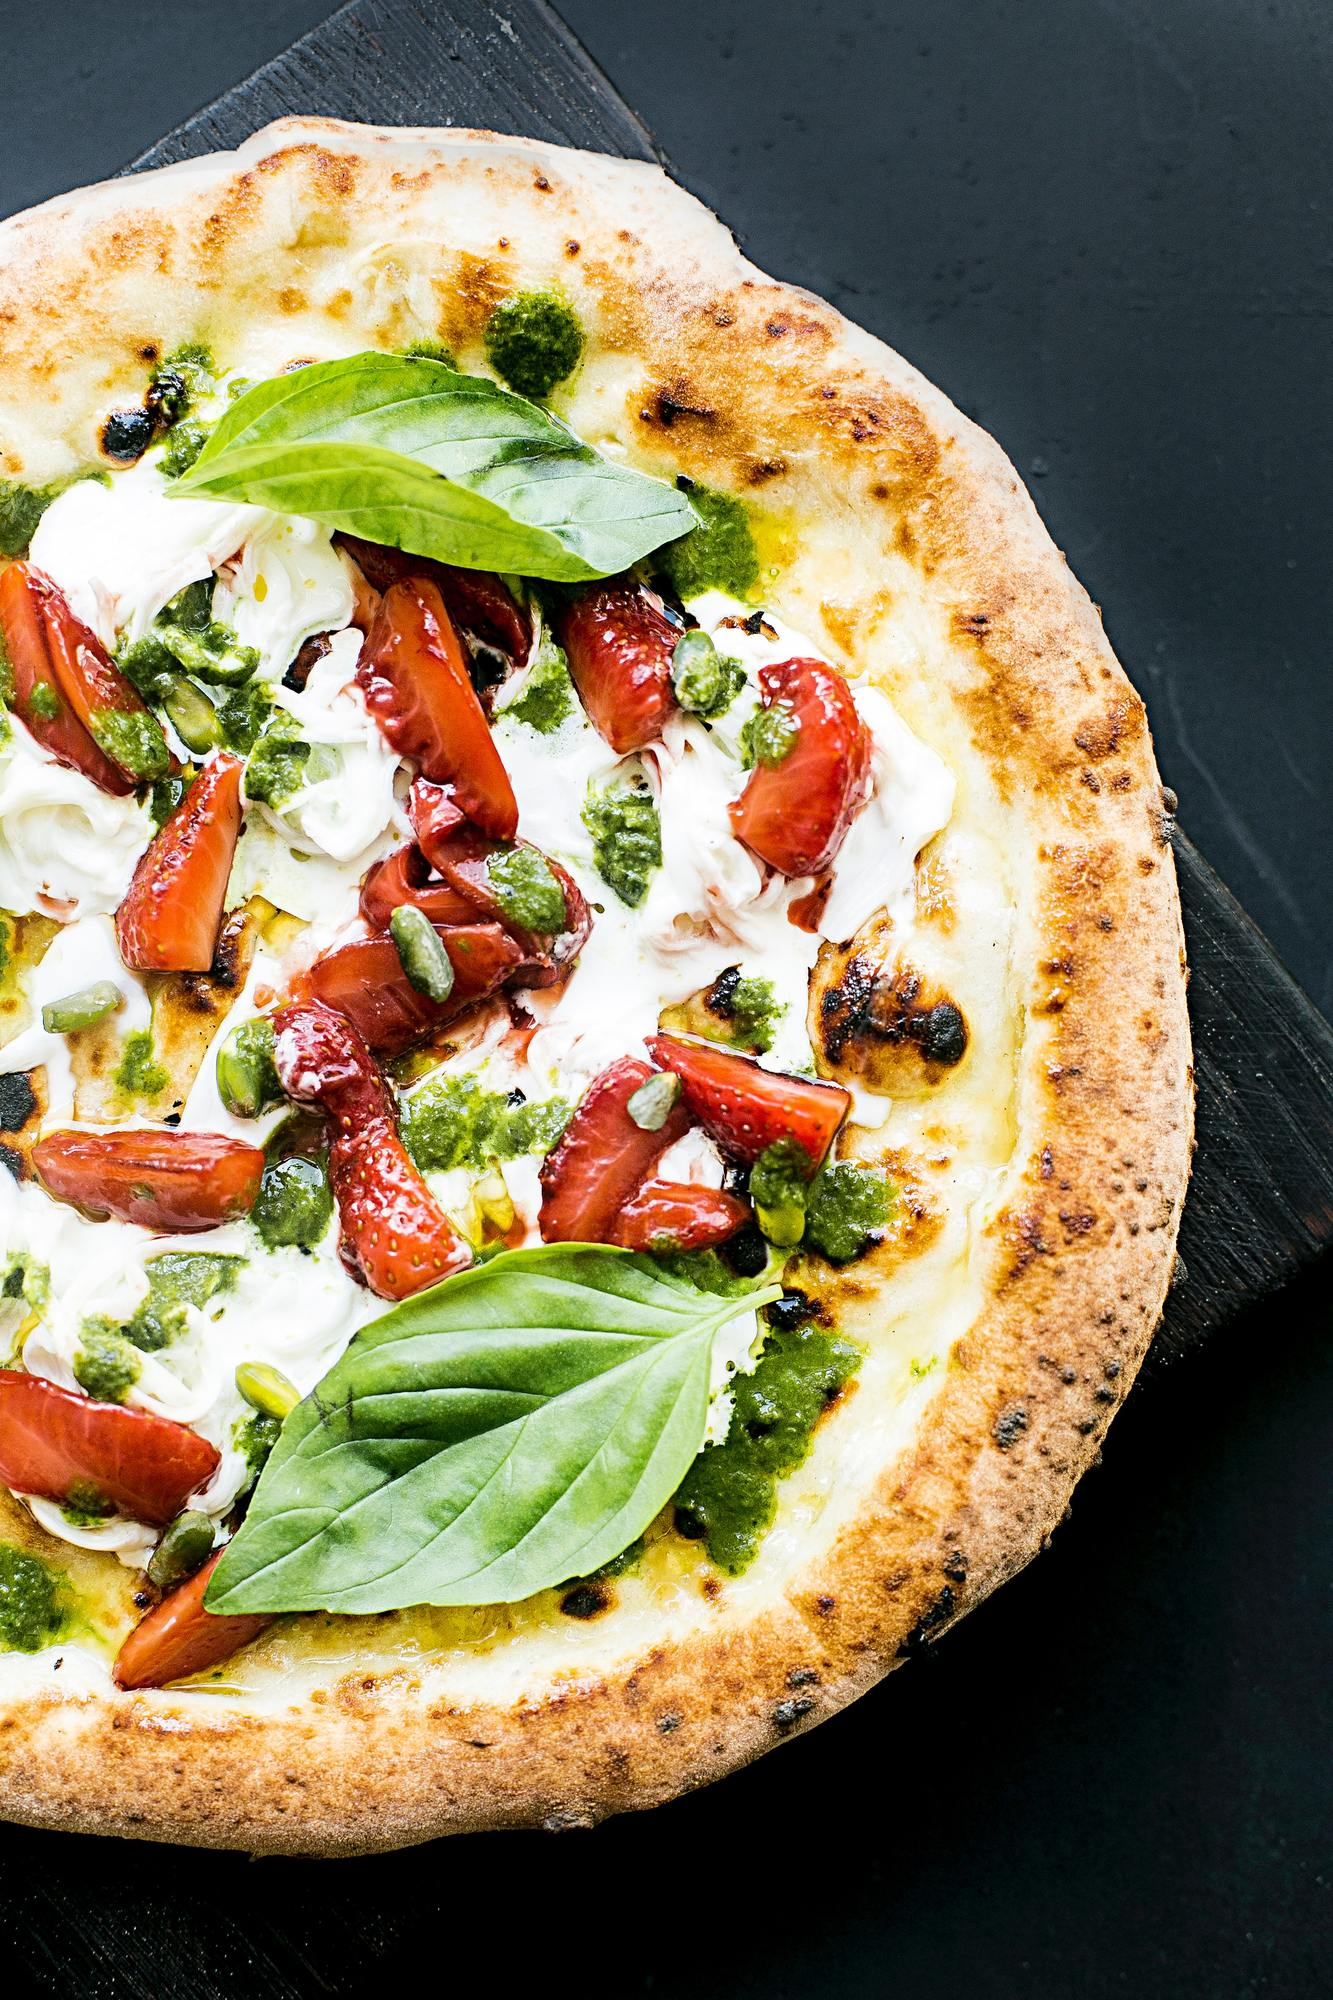 pepperoni-pizza-and-basil-leaves